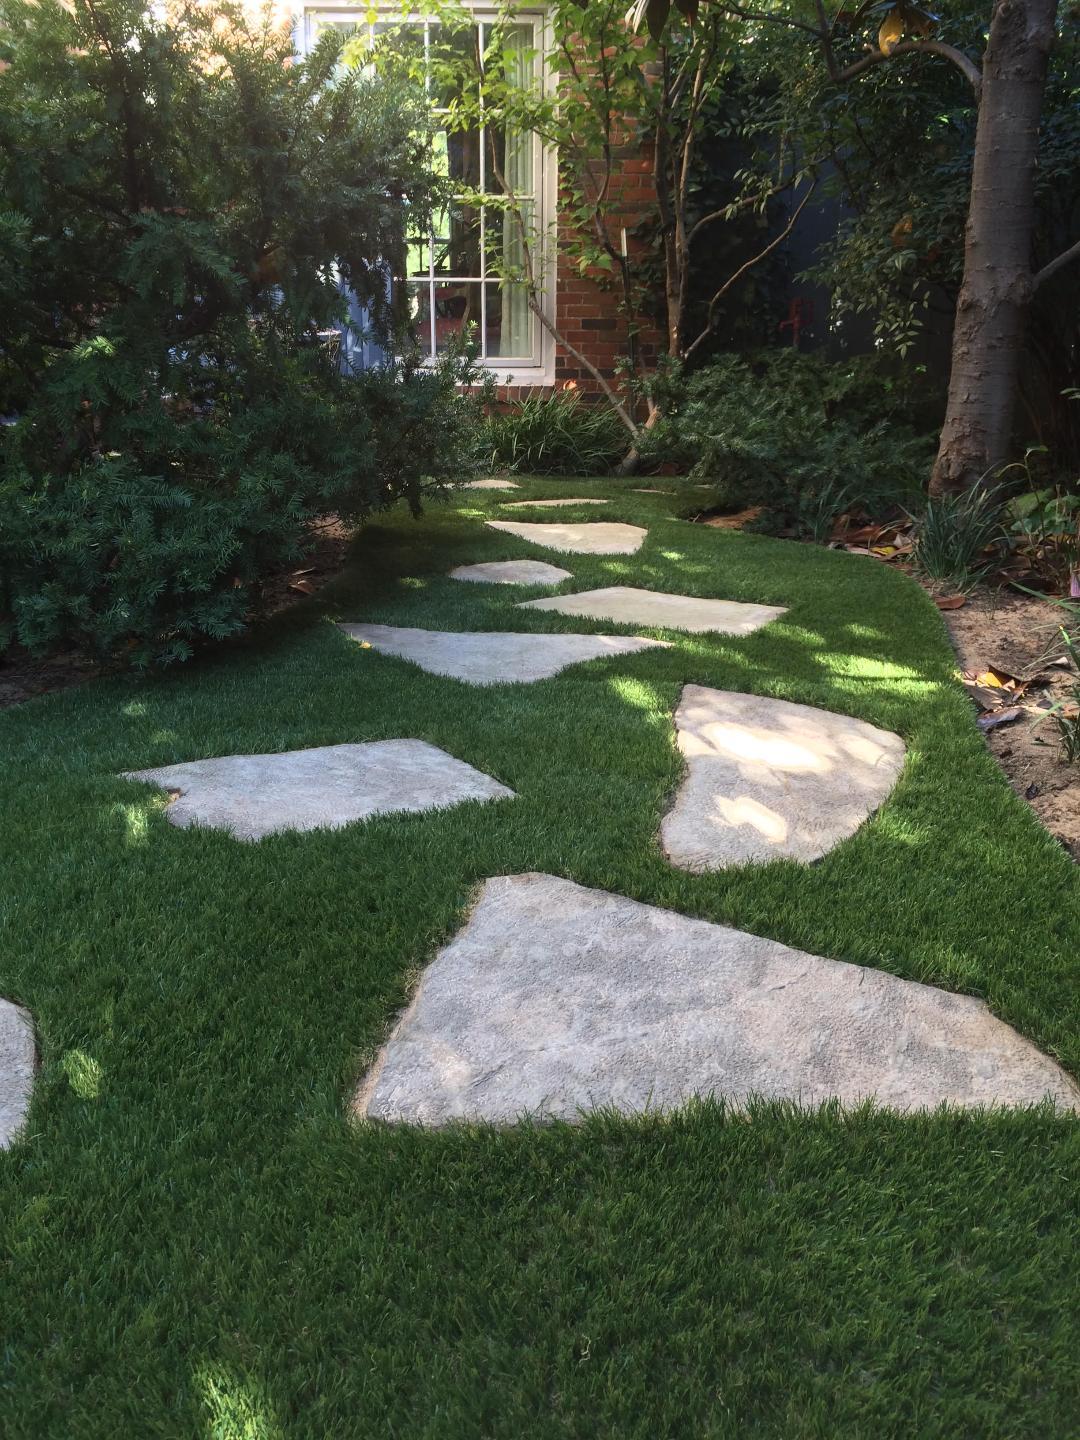 Utilize a Fake Grass Yard for your Outdoor Remodel